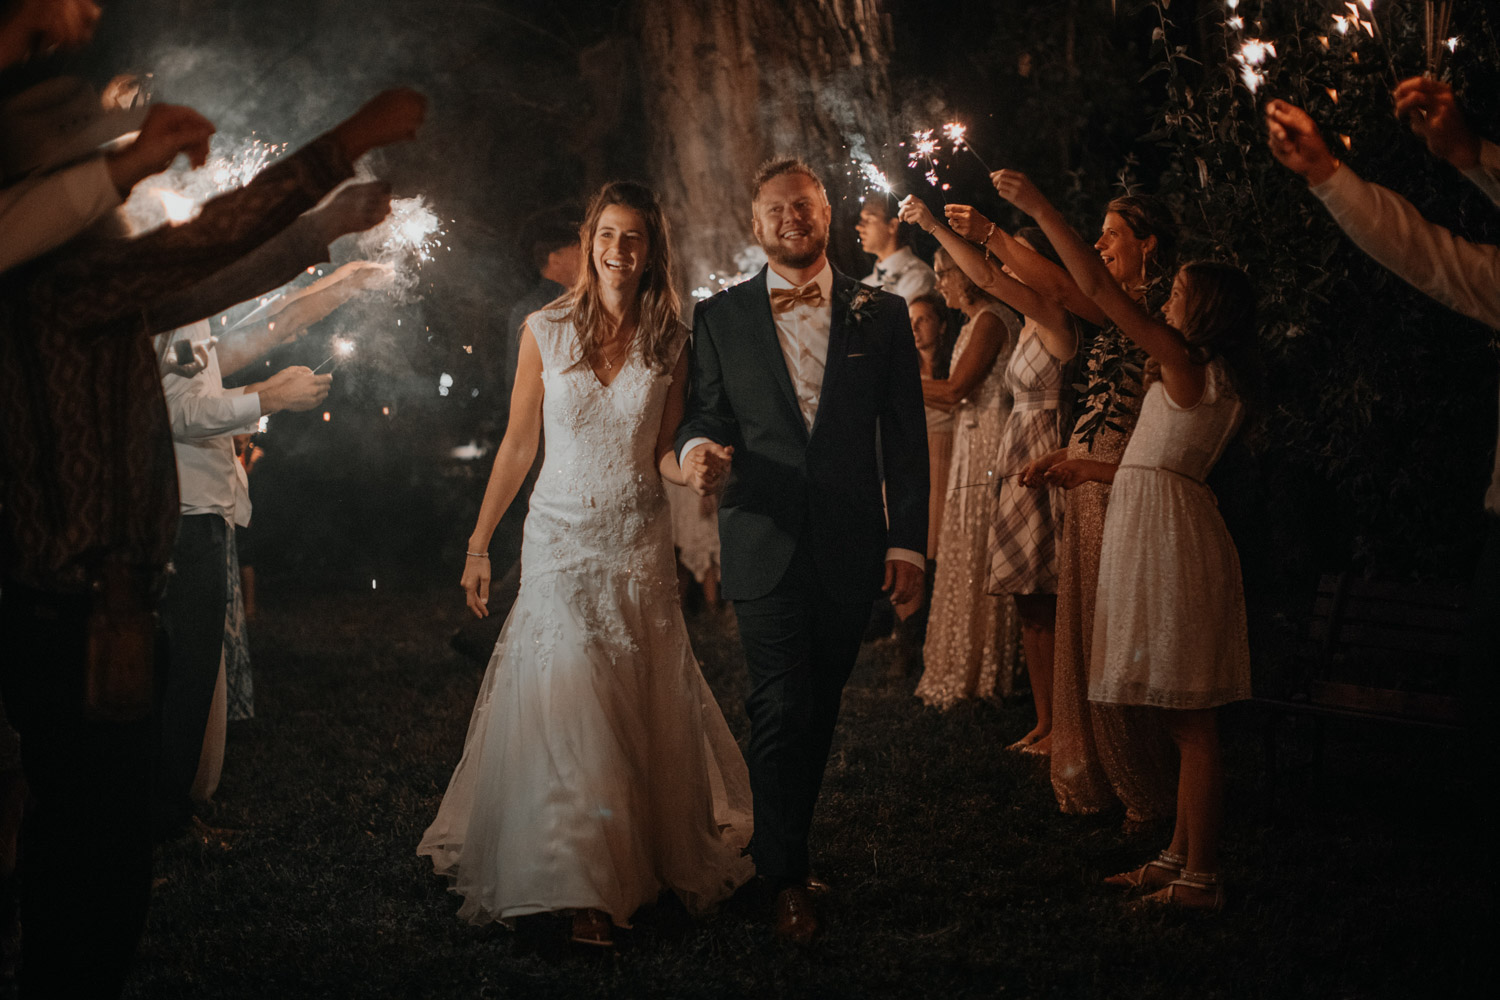 Tabitha Roth Schweizer Hochzeitsfotografin  USA Colorado destination wedding outdoor  sparkler exit